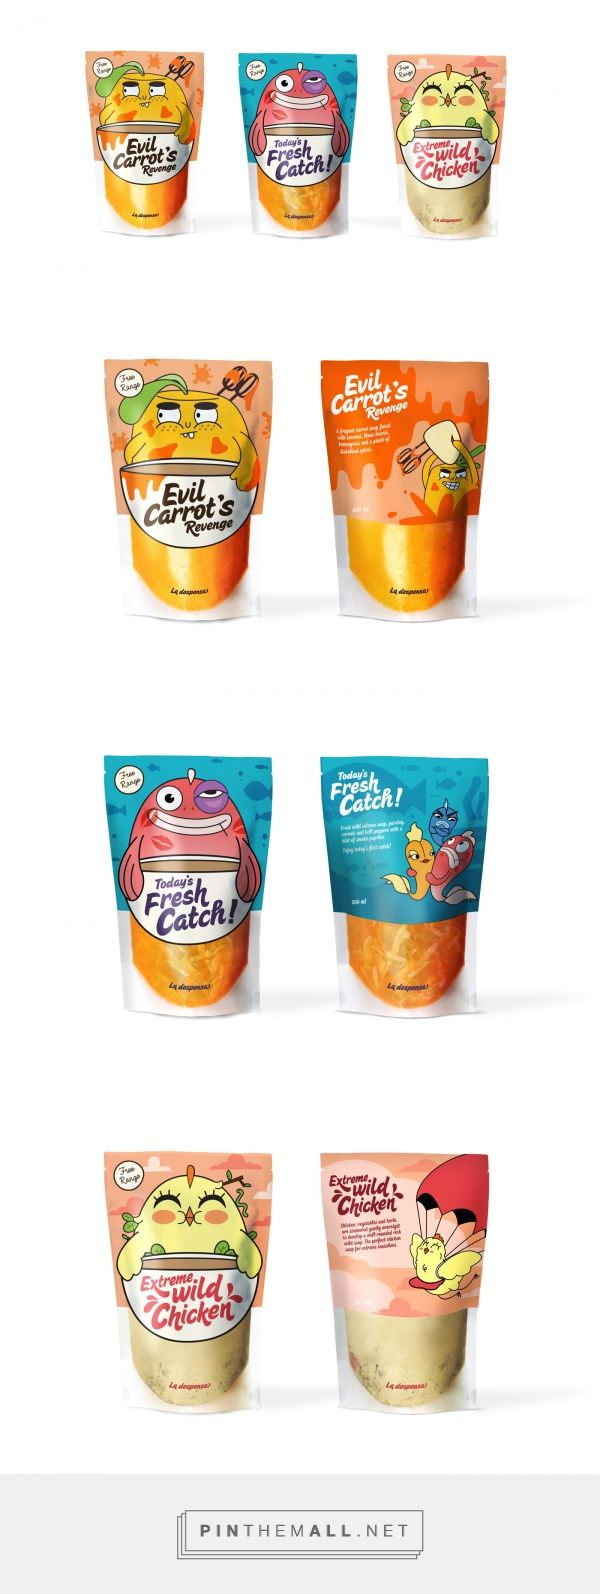 La Despensa by Nadia Arioui curated by Packaging Diva PD. Global re-branding and packaging of soup brand. Clever use of humor and playful characters appeals to both Children and Adults alike : )